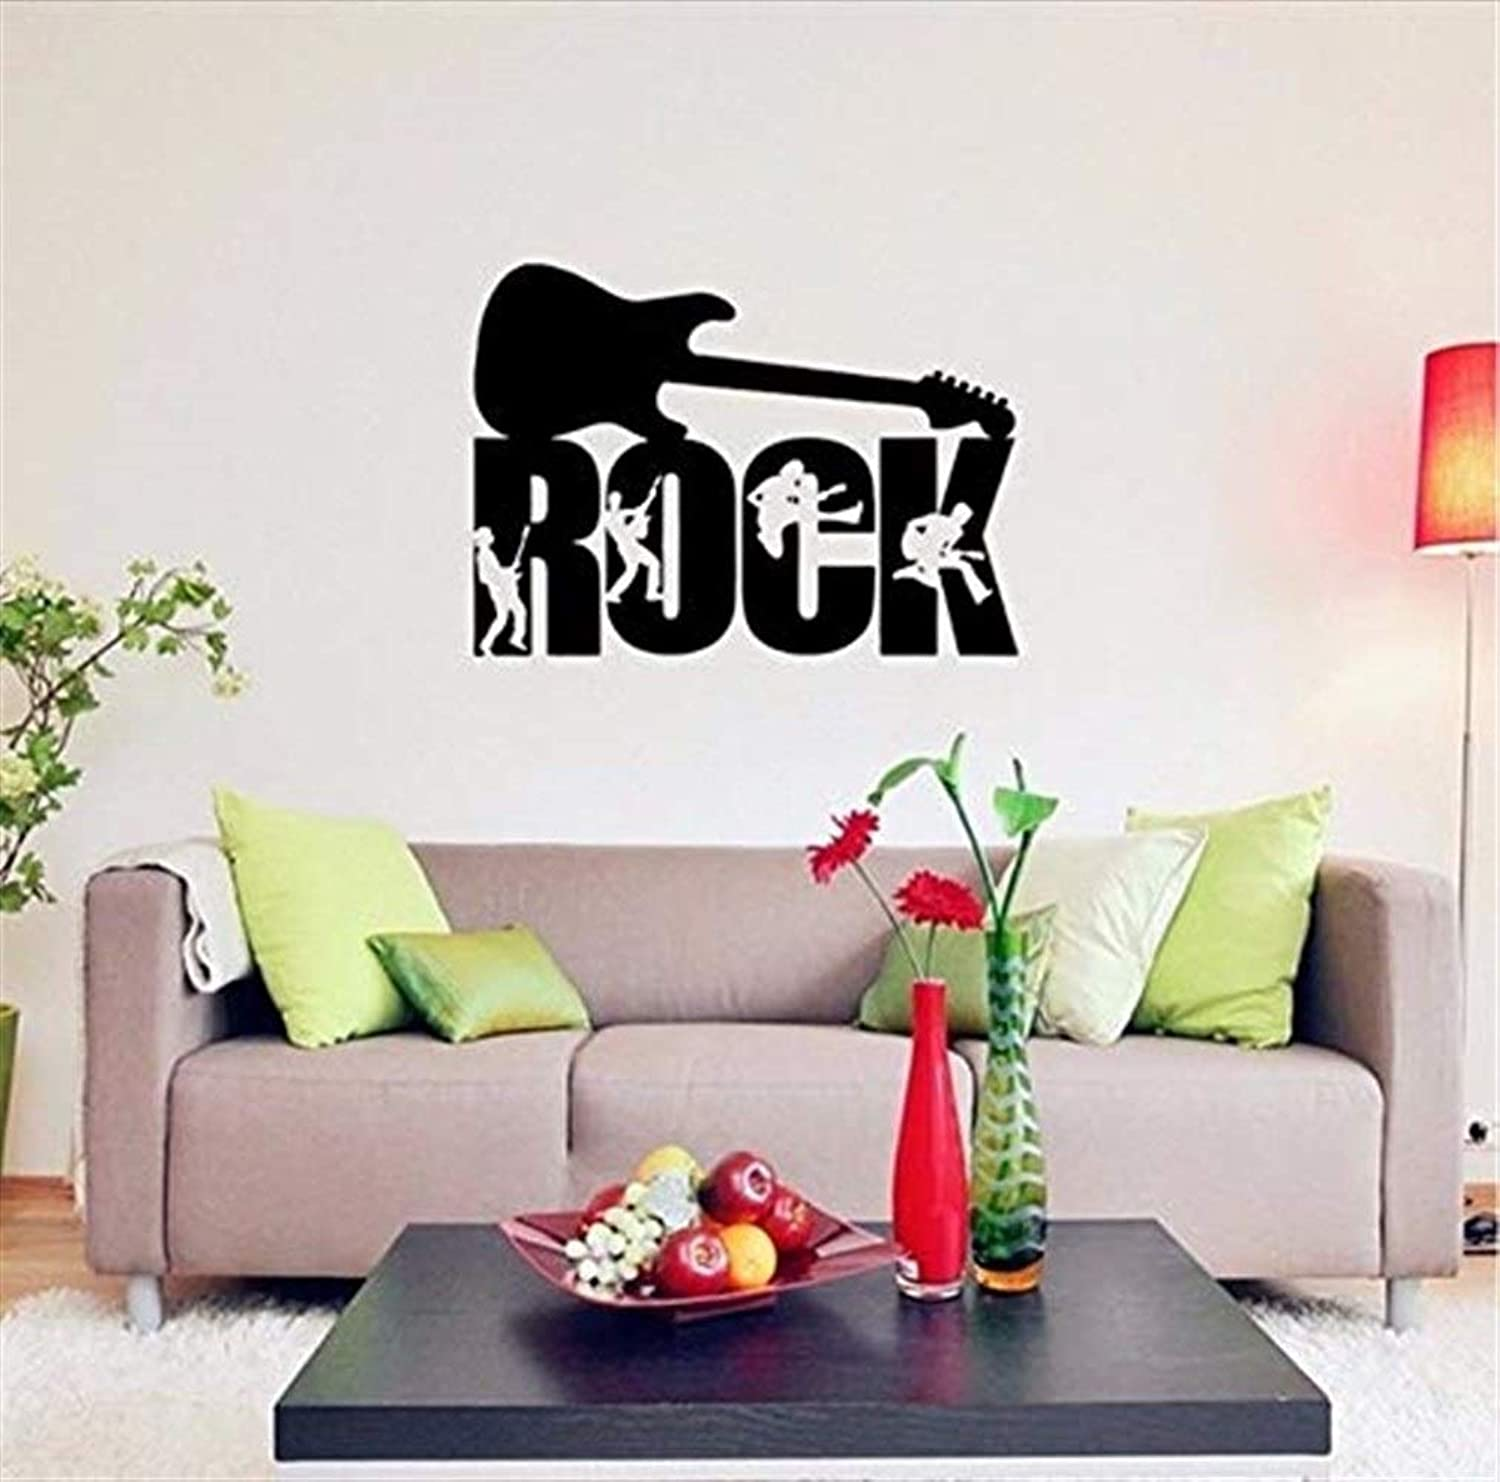 Wallpapers Creative Rock Music Art Vinyl Decals Wall Stickers Home Decor Living Room Bed Room Removable DIY Wallpaper